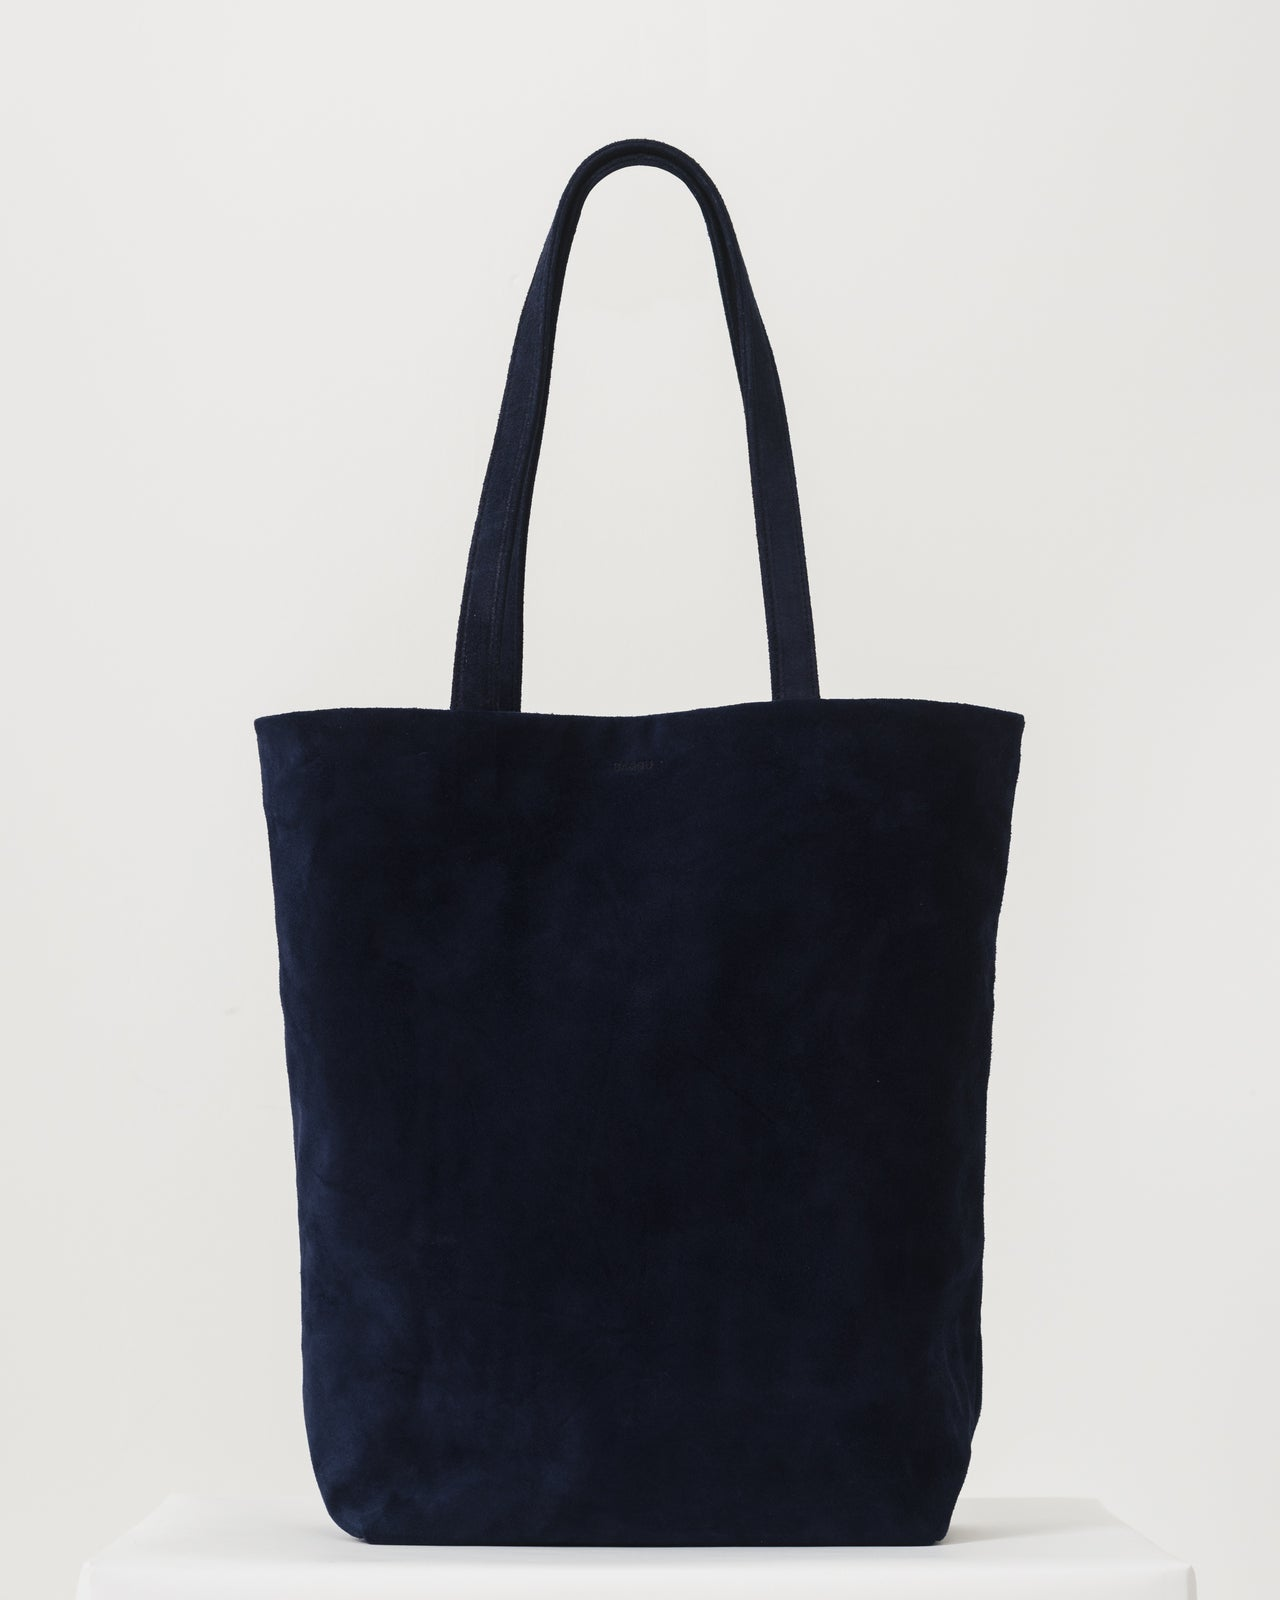 Basic Tote - Midnight Suede - Basic Tote - SALE - BAGGU